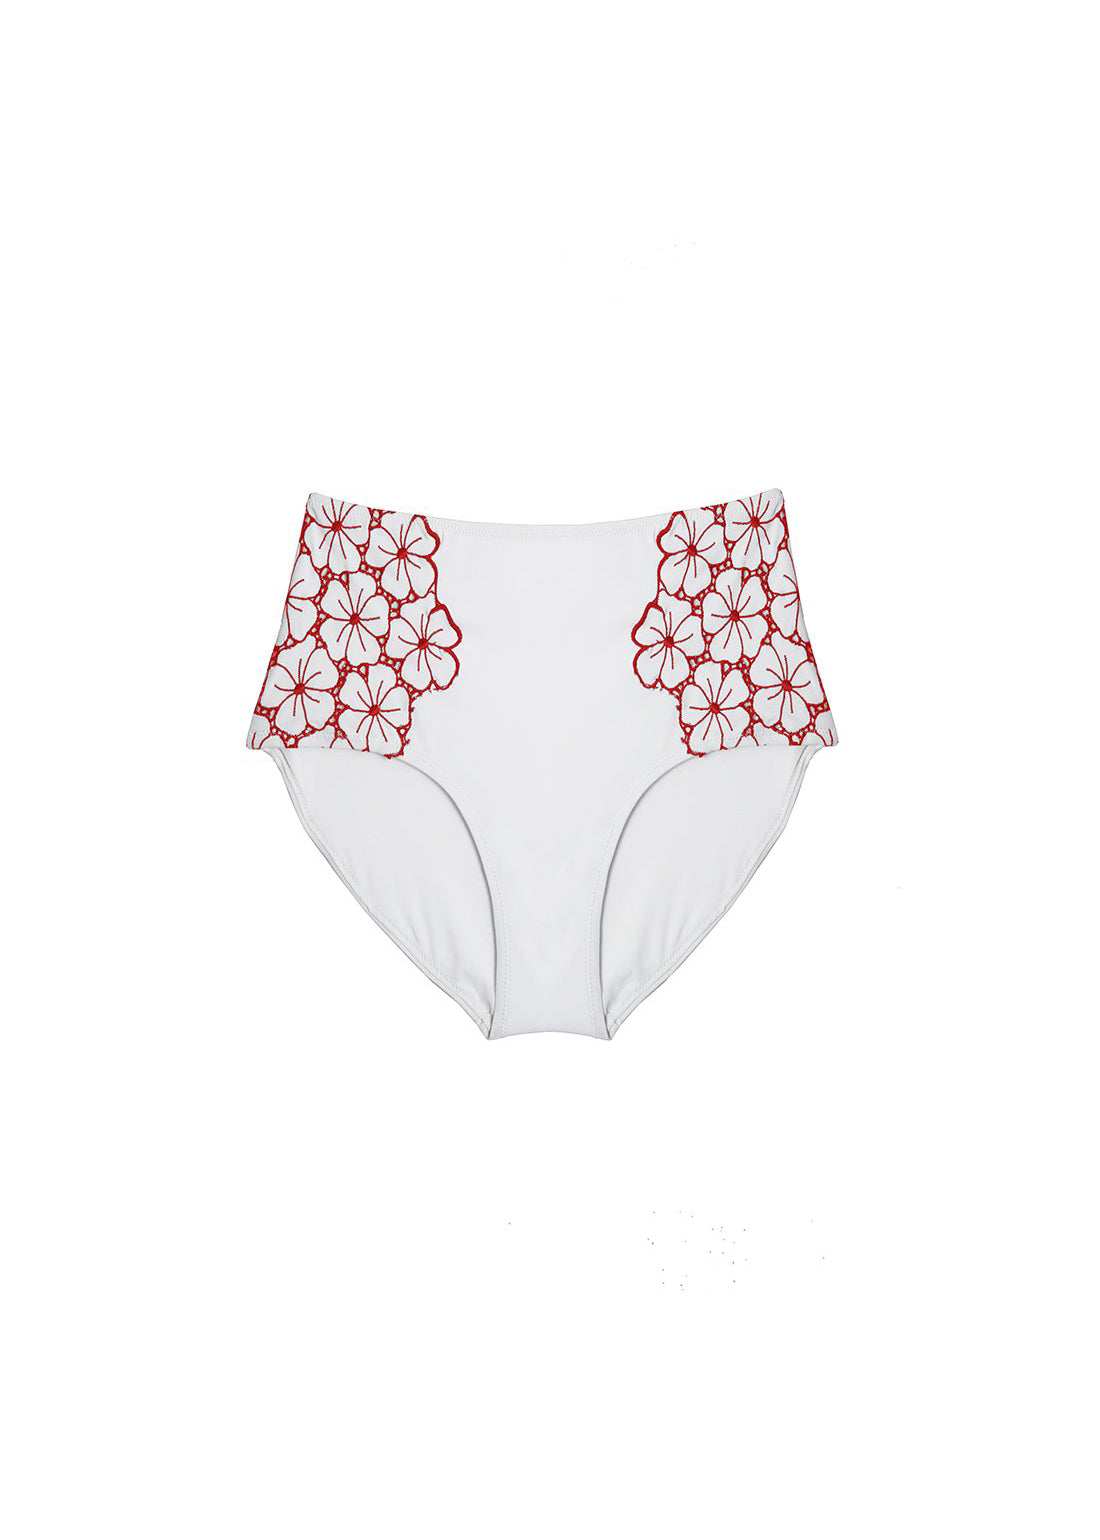 La Dolce Vita High Waist Bikini Brief in White/Red